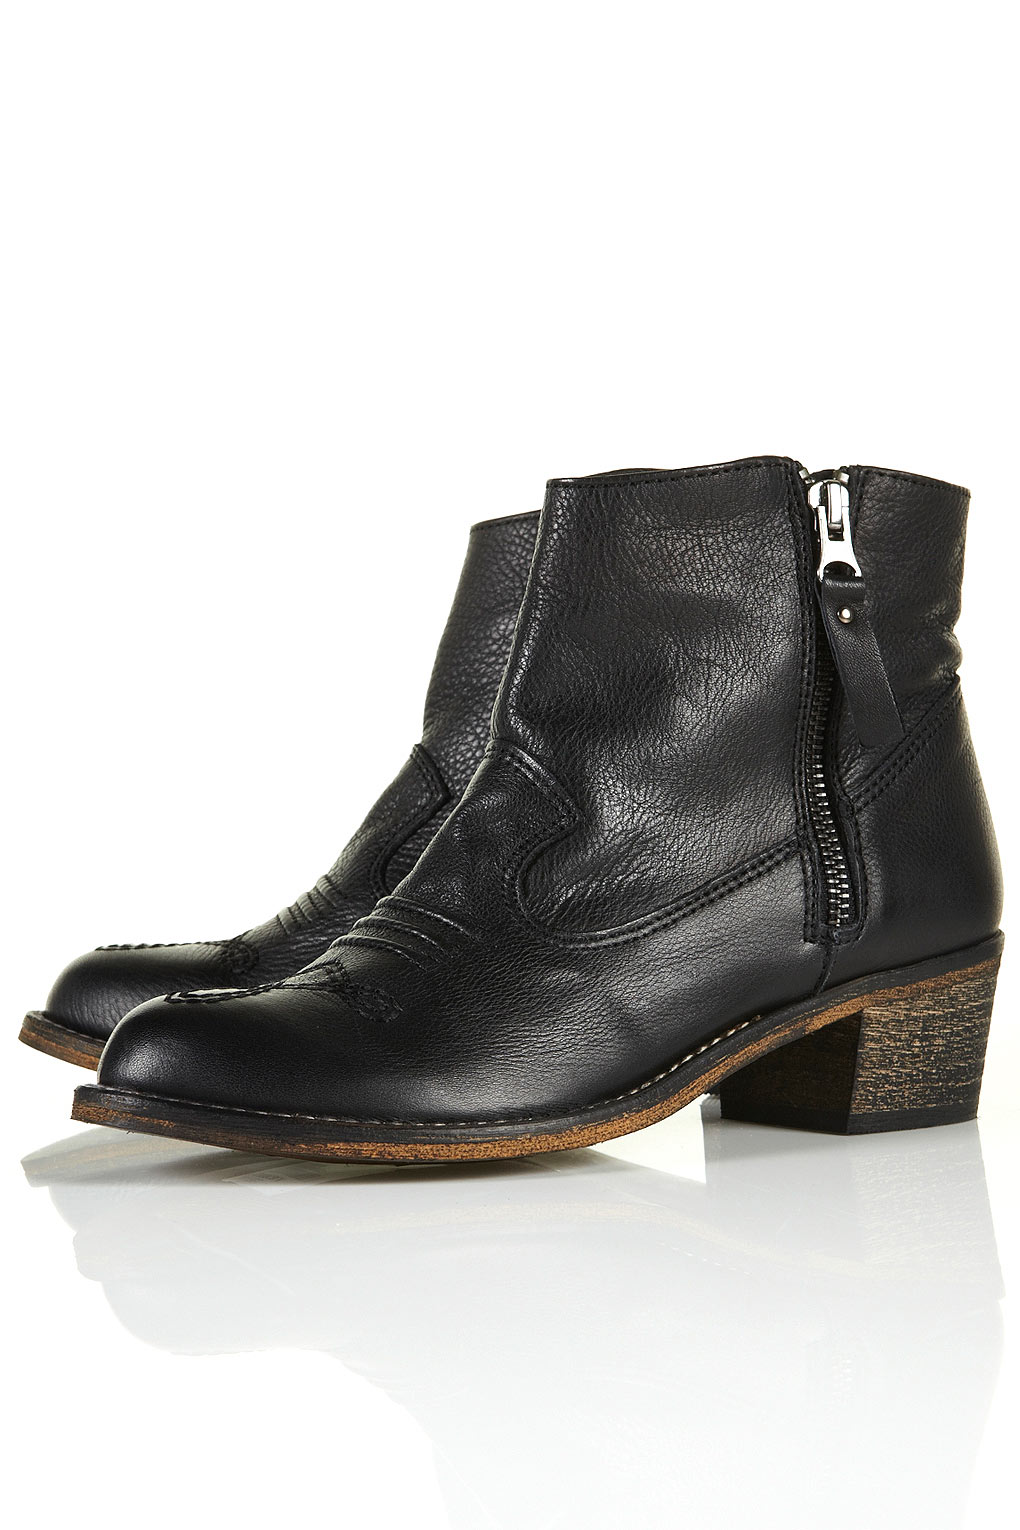 Topshop Artreu Western Ankle Boots in Black | Lyst